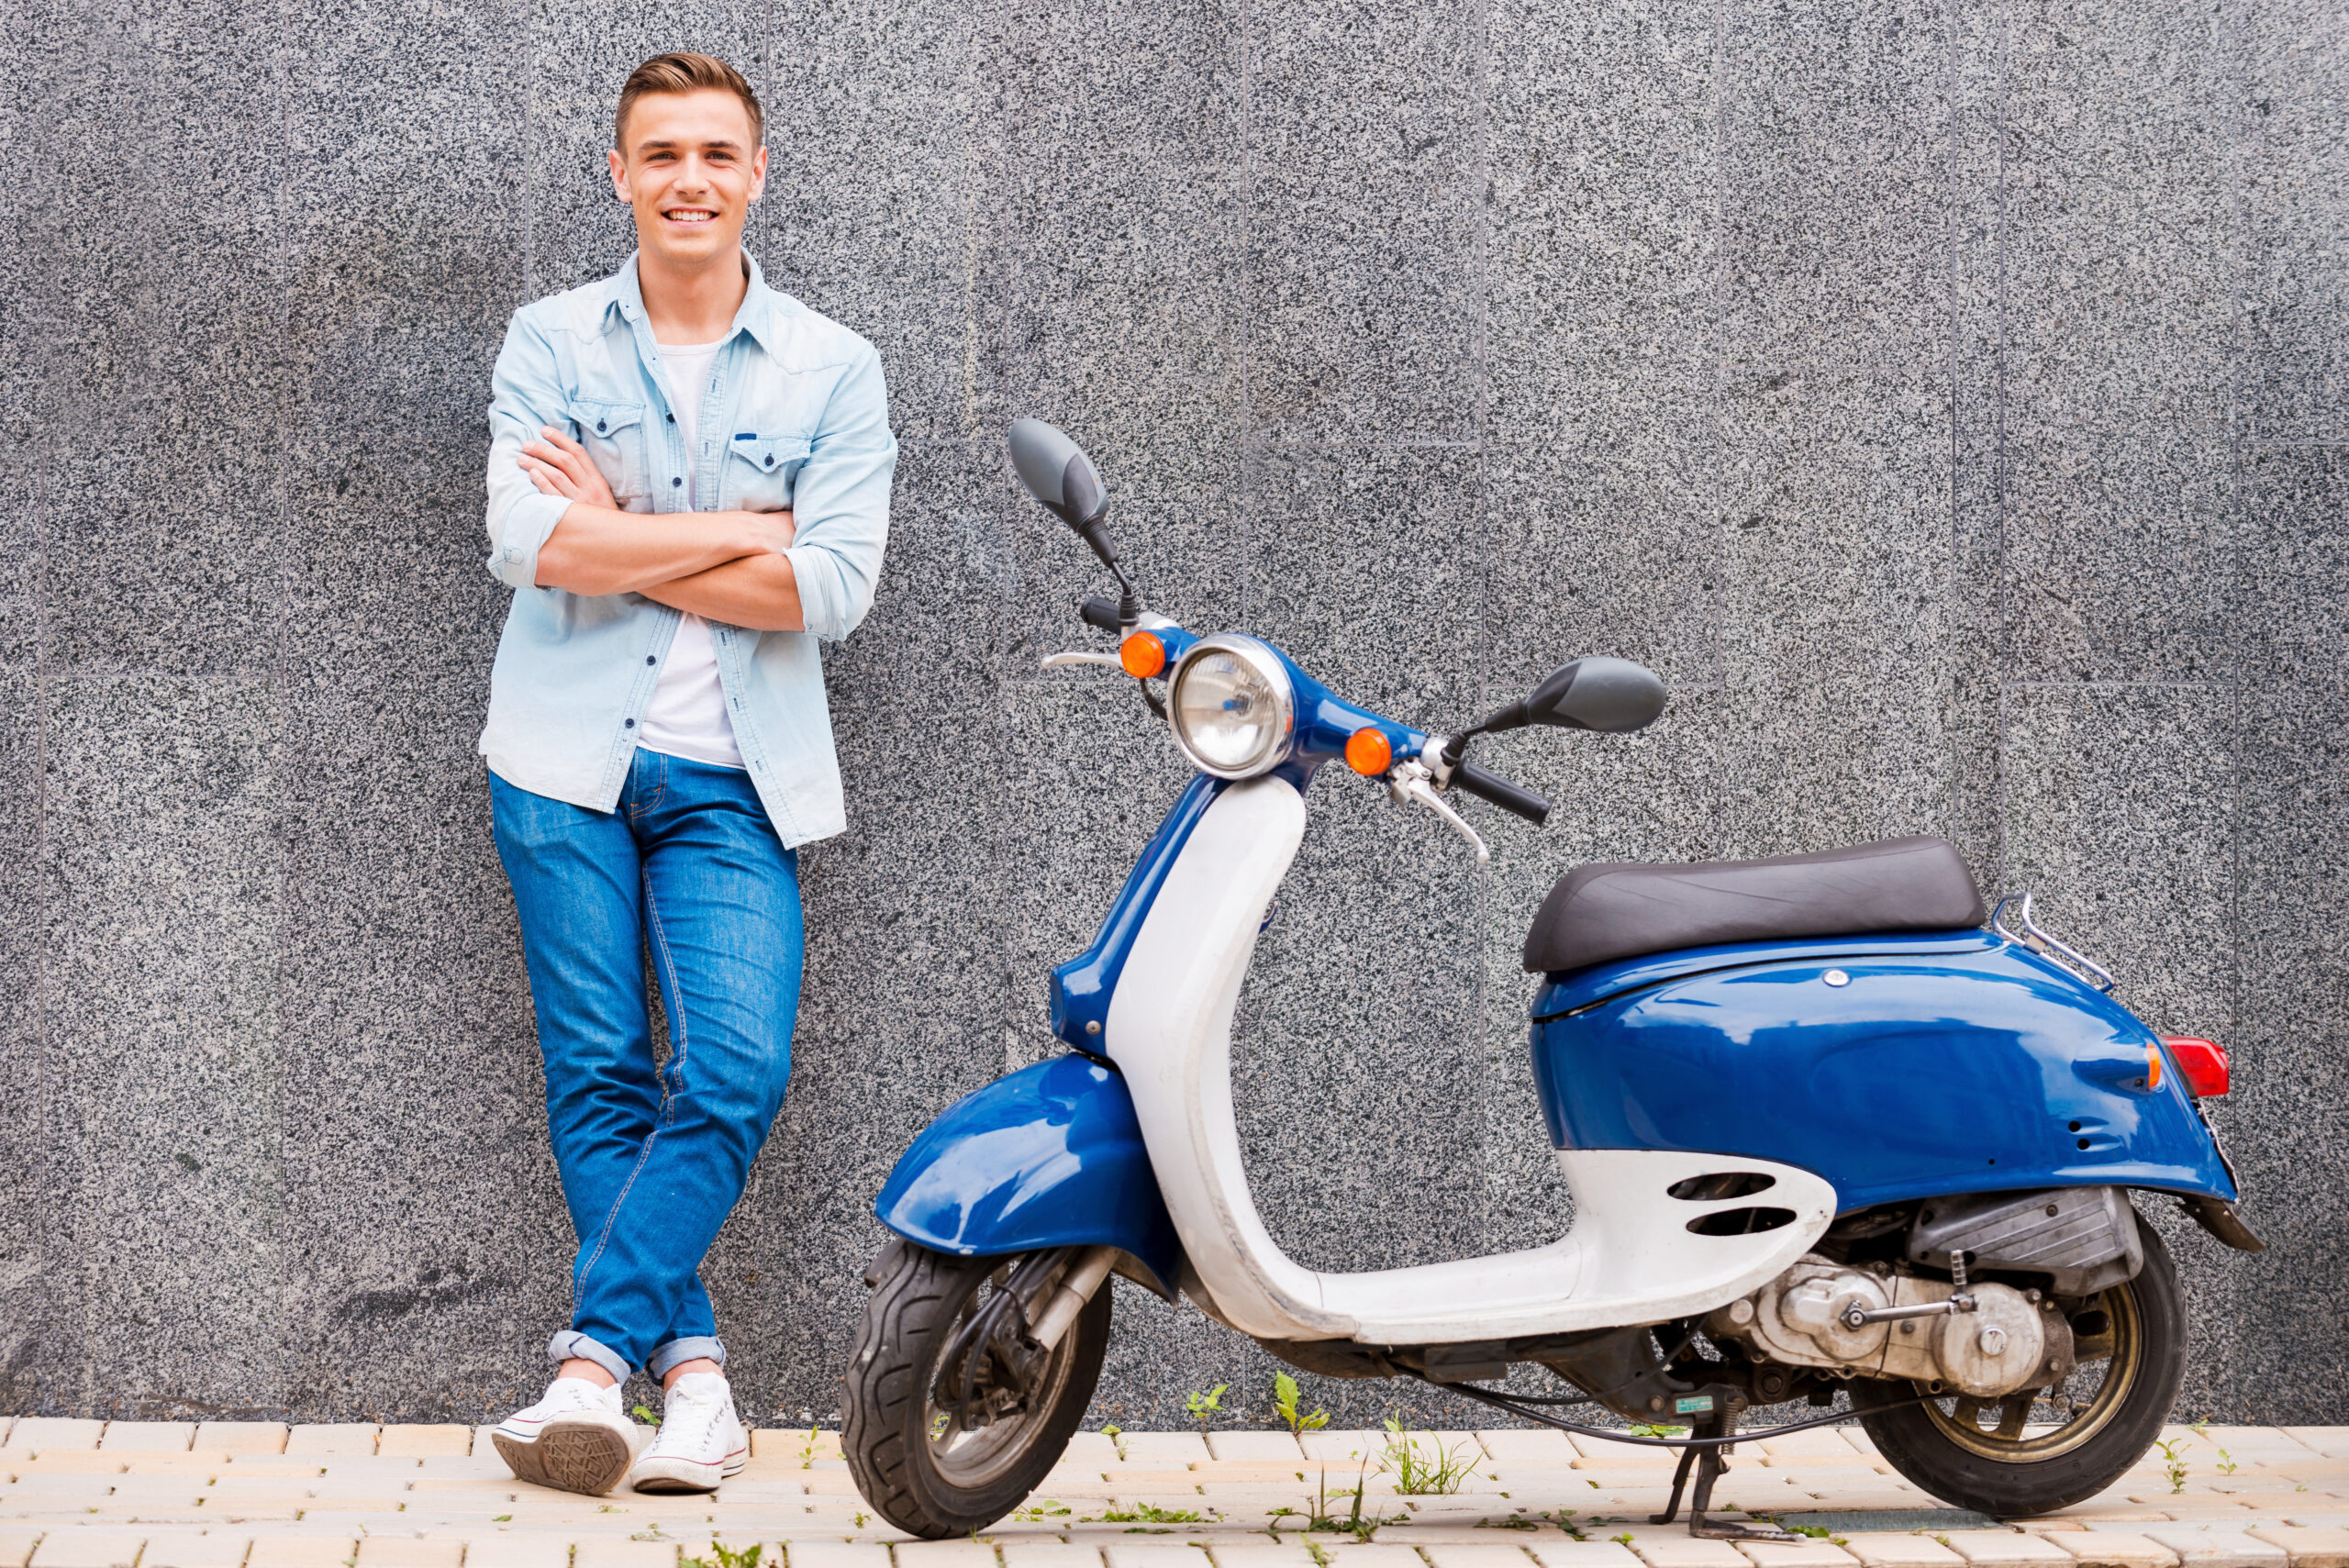 Me and my new scooter. Handsome young man leaning at the wall and smiling while standing near his new scooter